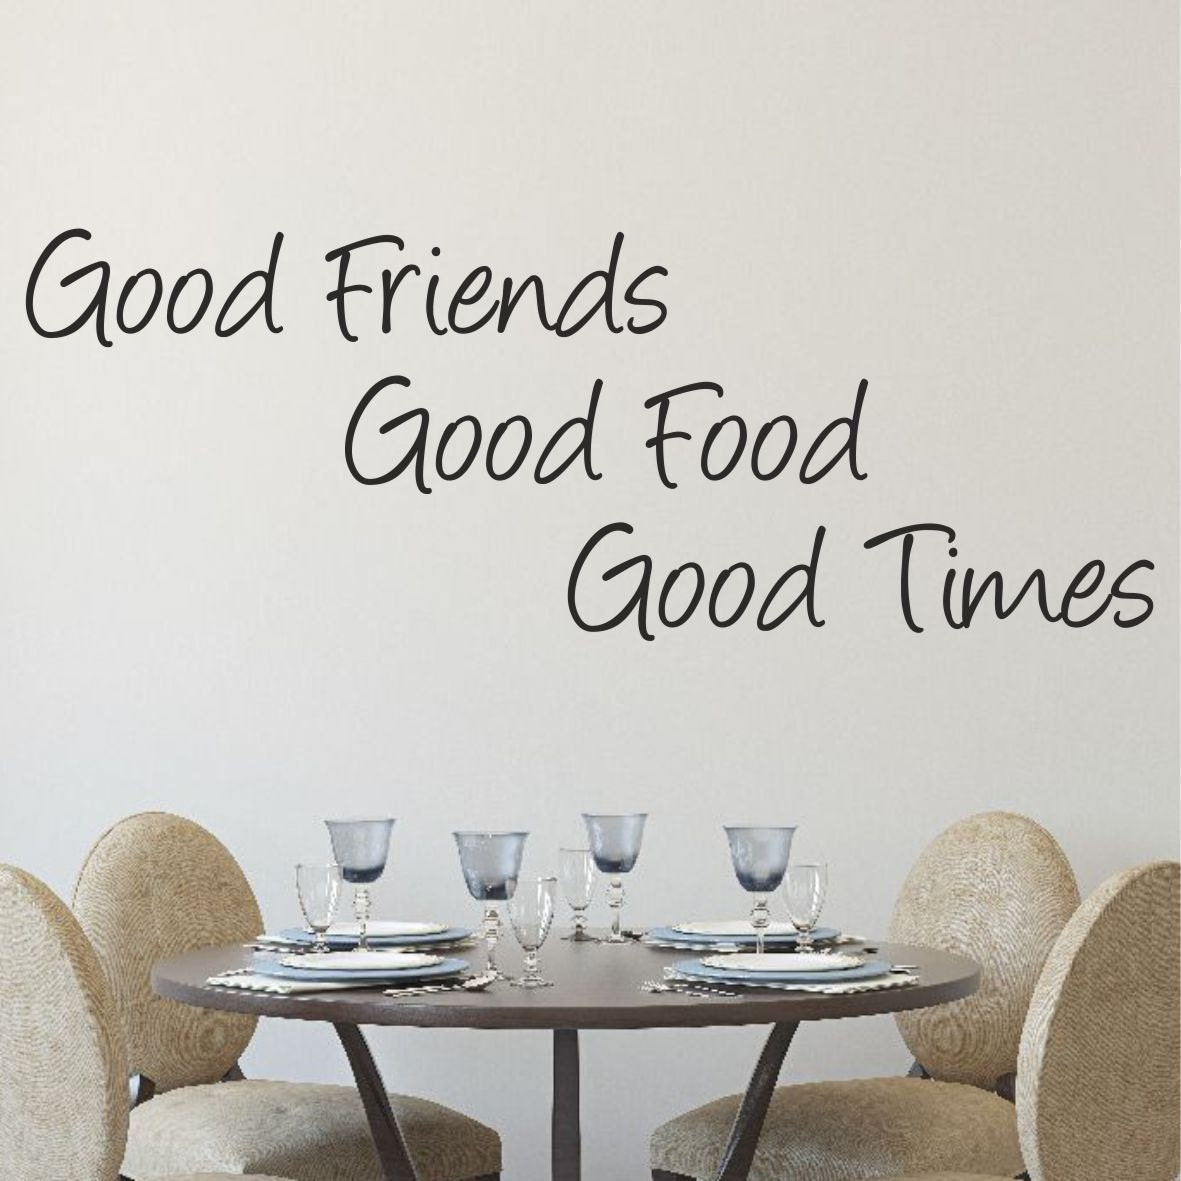 Good Times Quotes: Good Friends Good Food Good Times VINYL Wall Art Sticker Quote